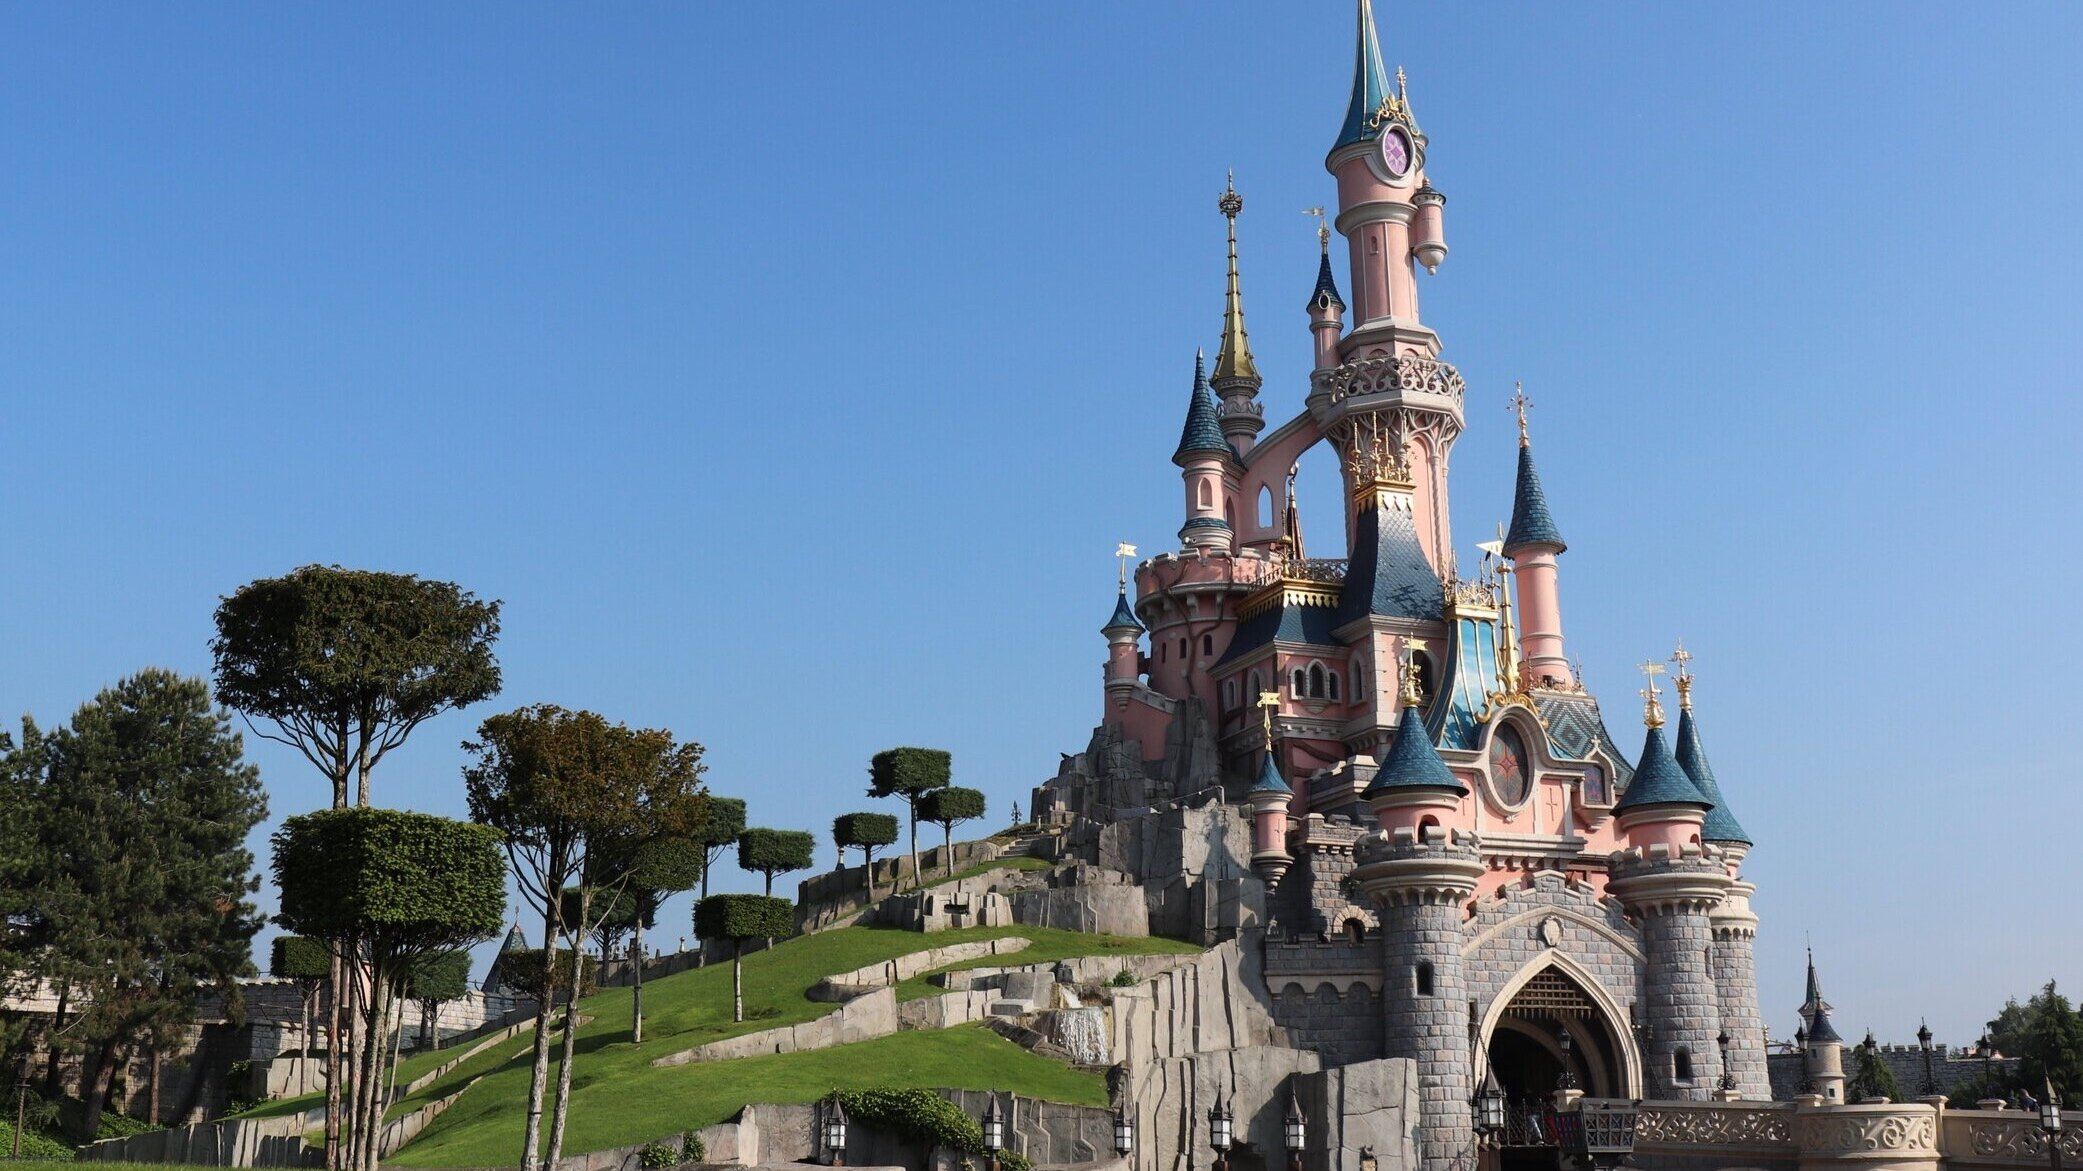 A view of the castle in Disneyland Park.